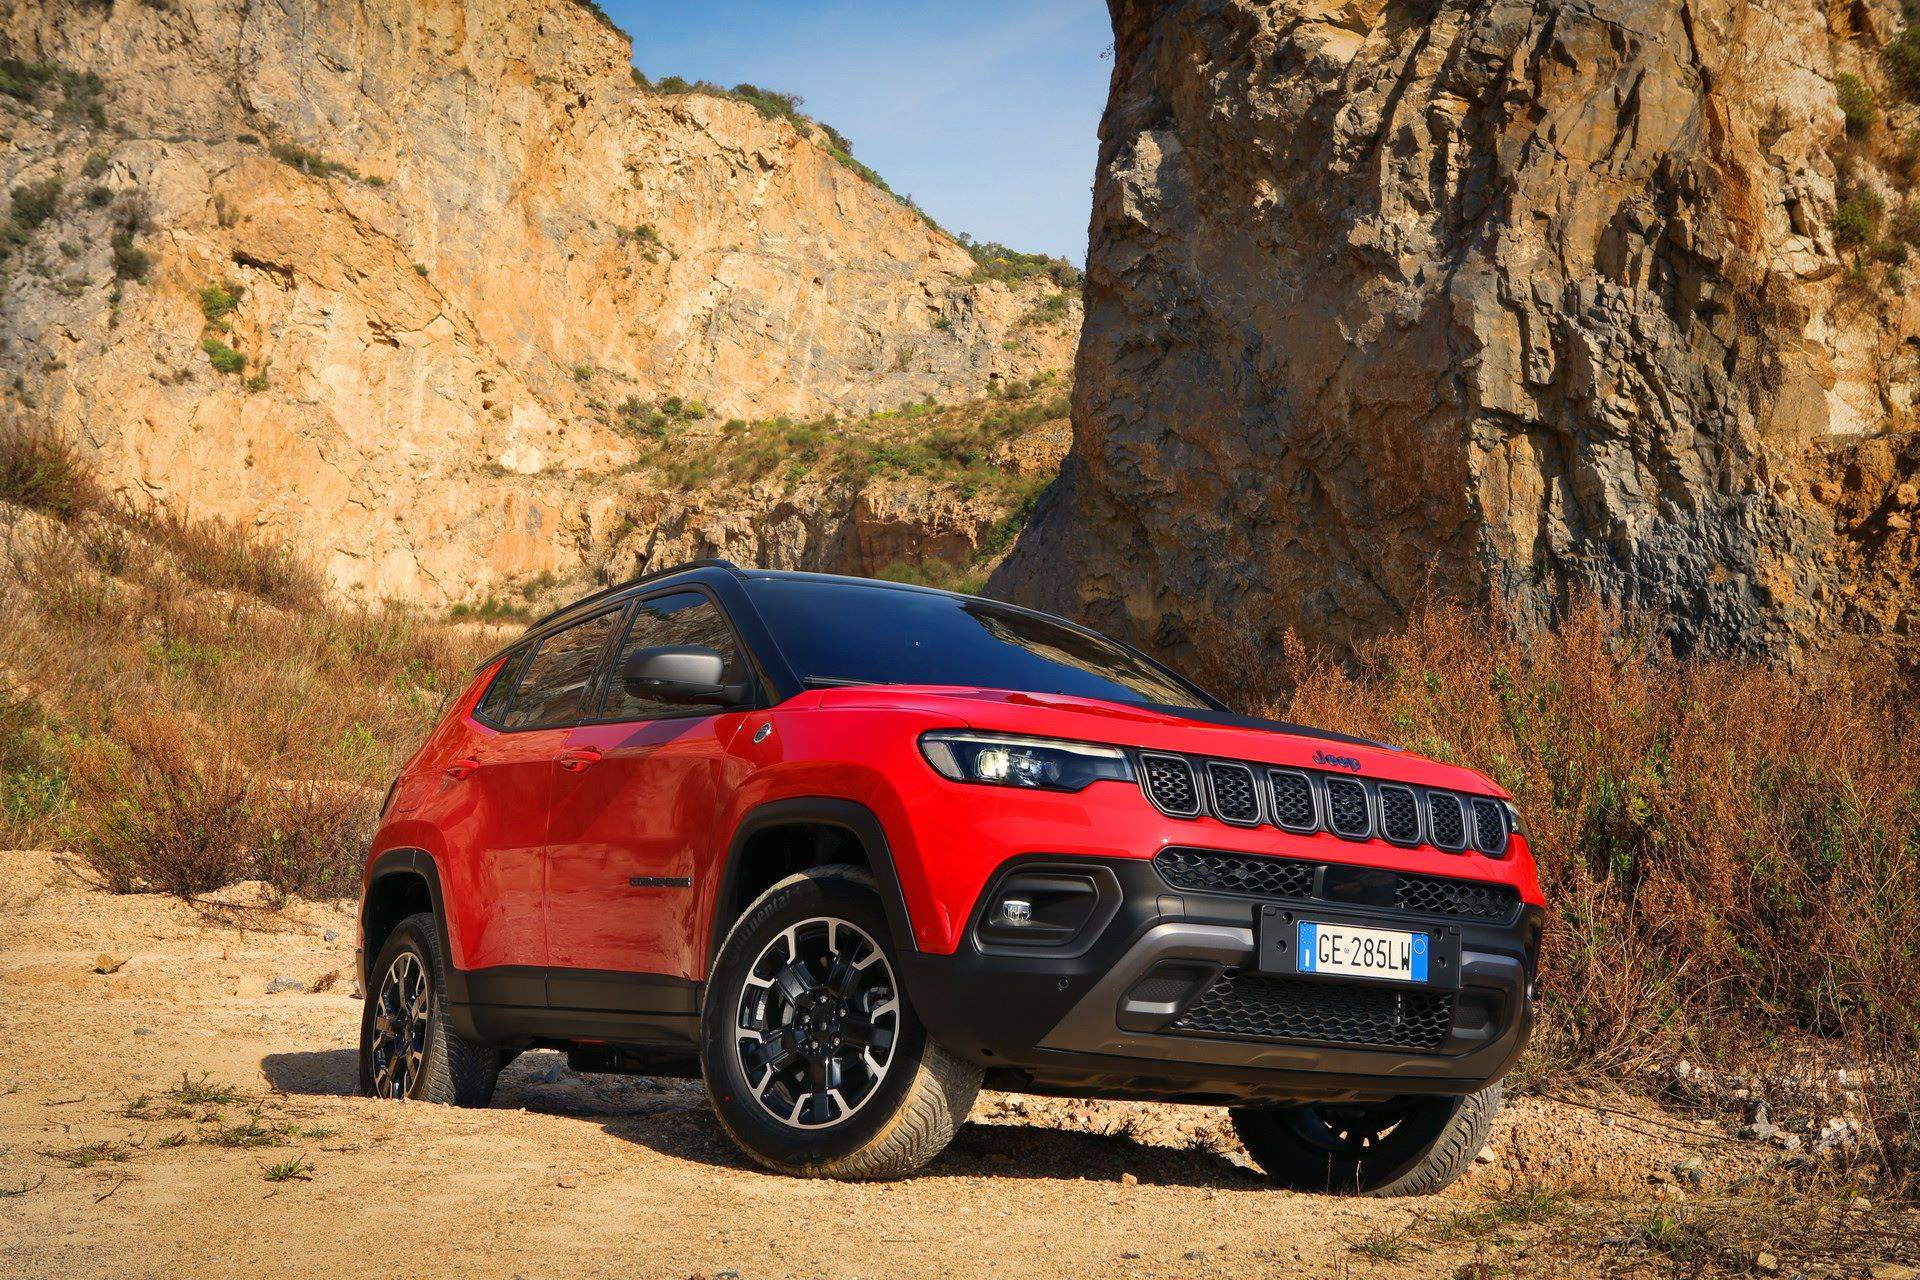 Jeep-Compass-facelift-2021-5